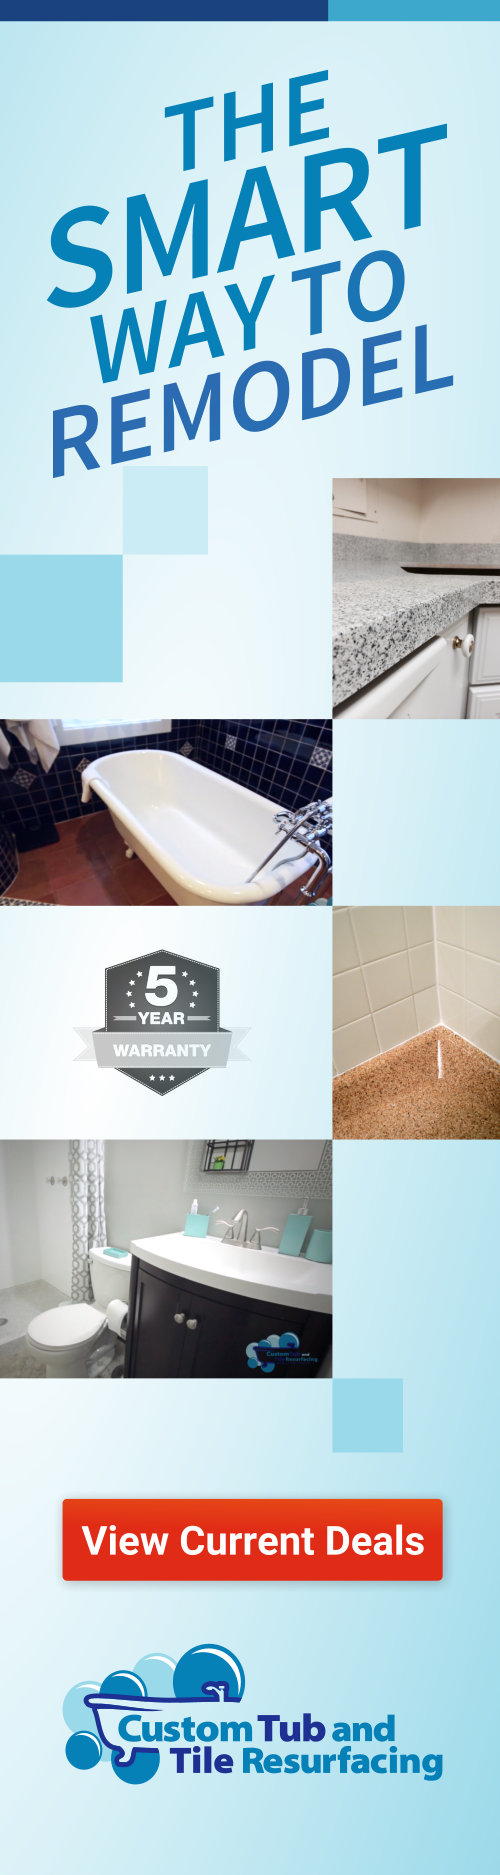 What Chemicals Are Used in Bathtub Refinishing?  Custom Tub and